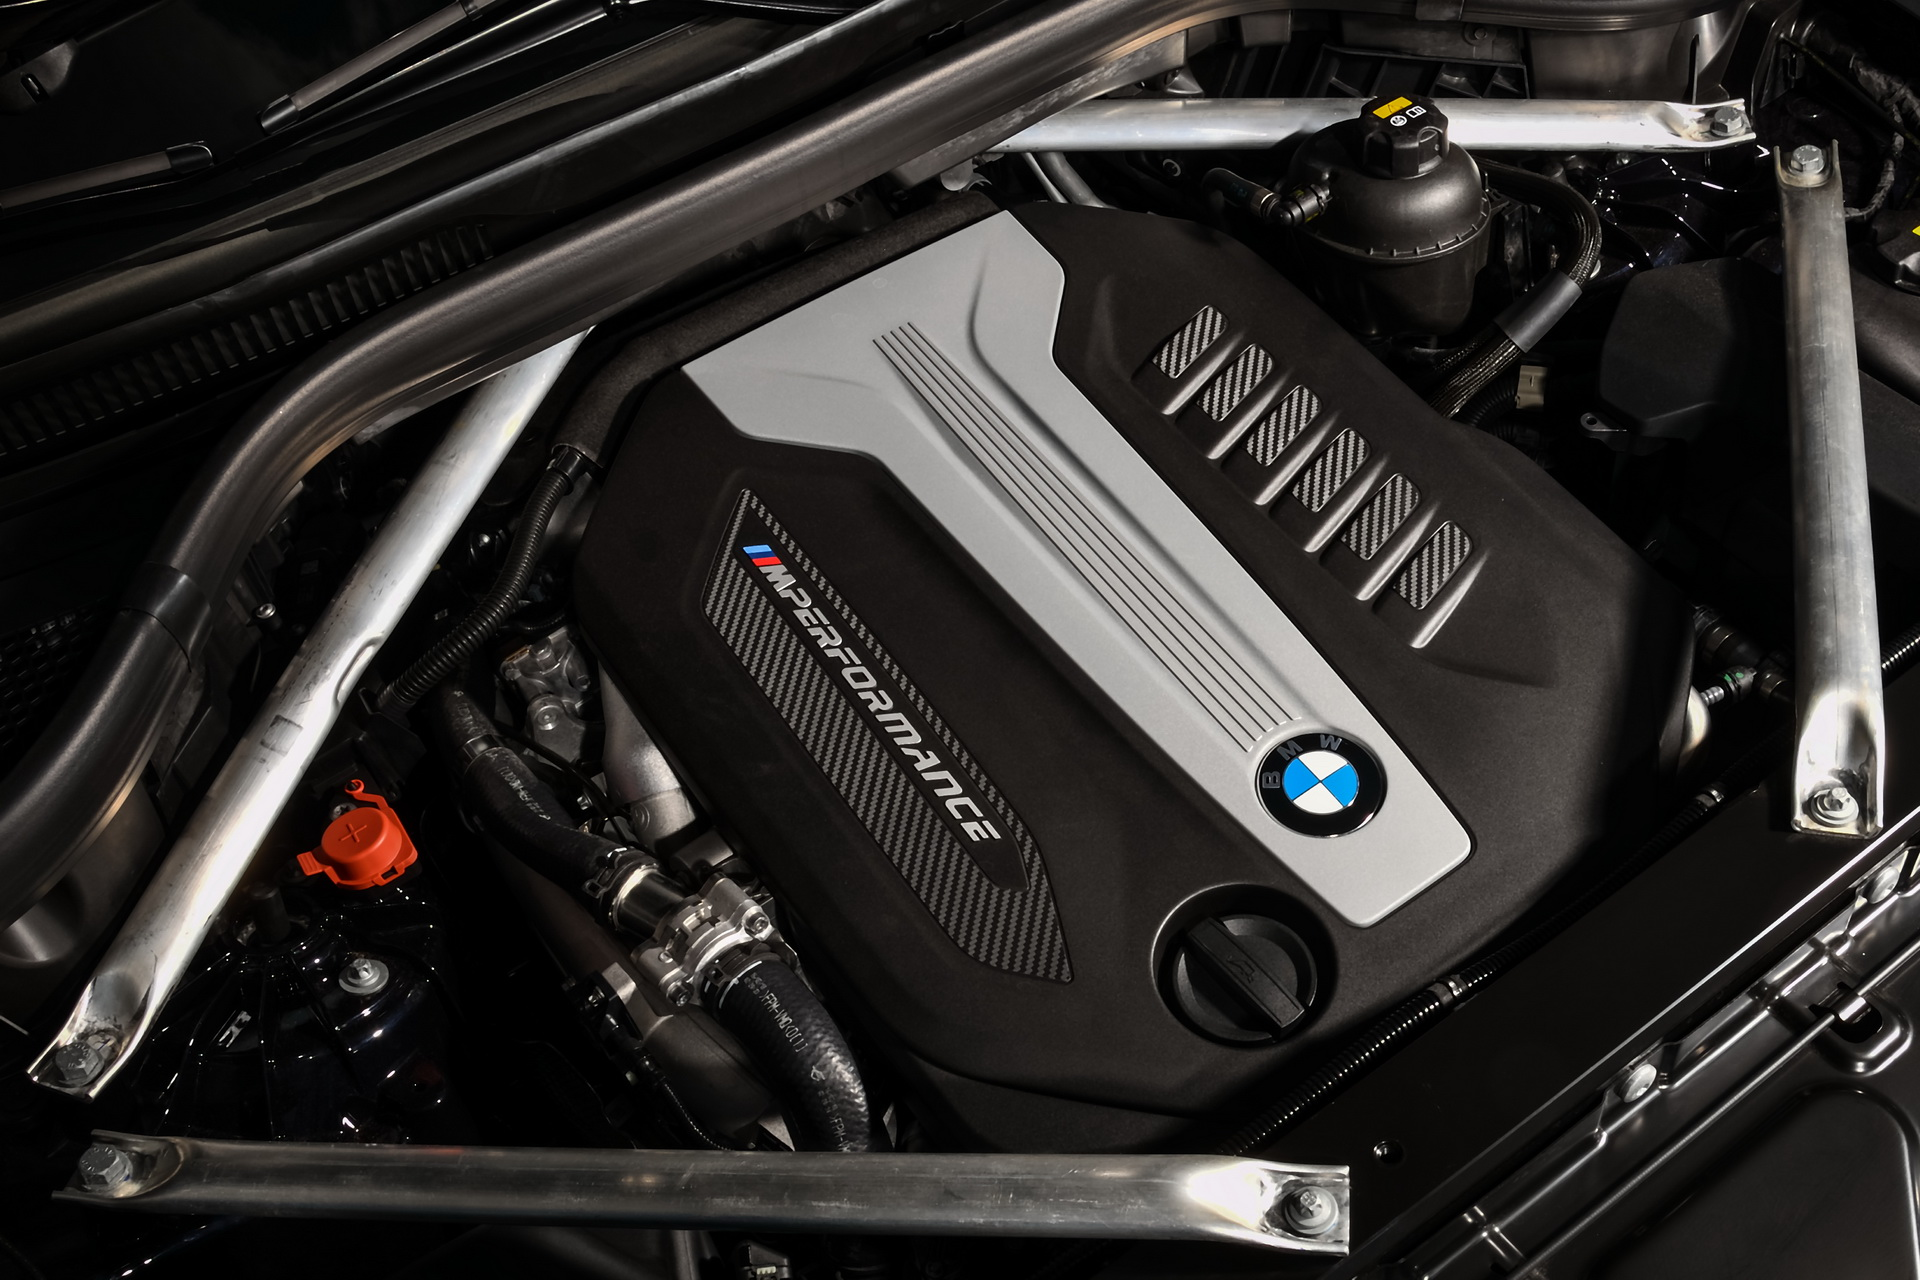 BMW says it will put its strongest diesel engine out of production in September, piecing together a limited batch of X5 and X7 models with it under the hood.